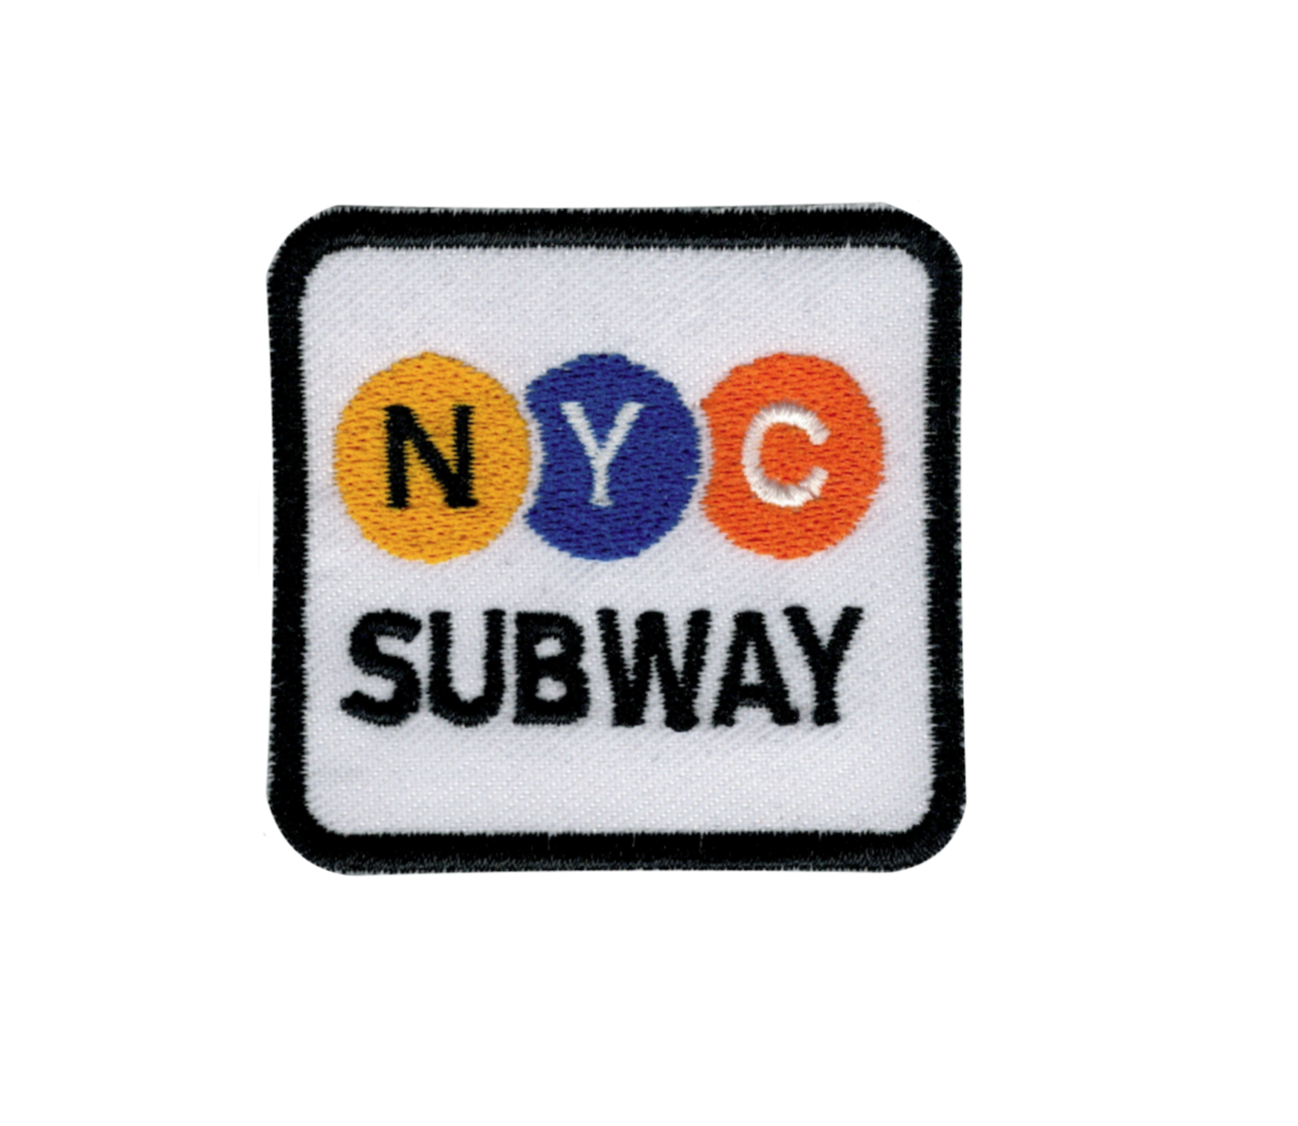 NYC SUBWAY WHITE BLASON BRODERIE VETEMENT WEAR CLOTHING CUSTOM APPAREL HABIT REPARER DECORATION HIP HOP ART GRAFFITI ARTISTE TAG SHOP PRO COMASOUND KARTEL CSK ONLINE